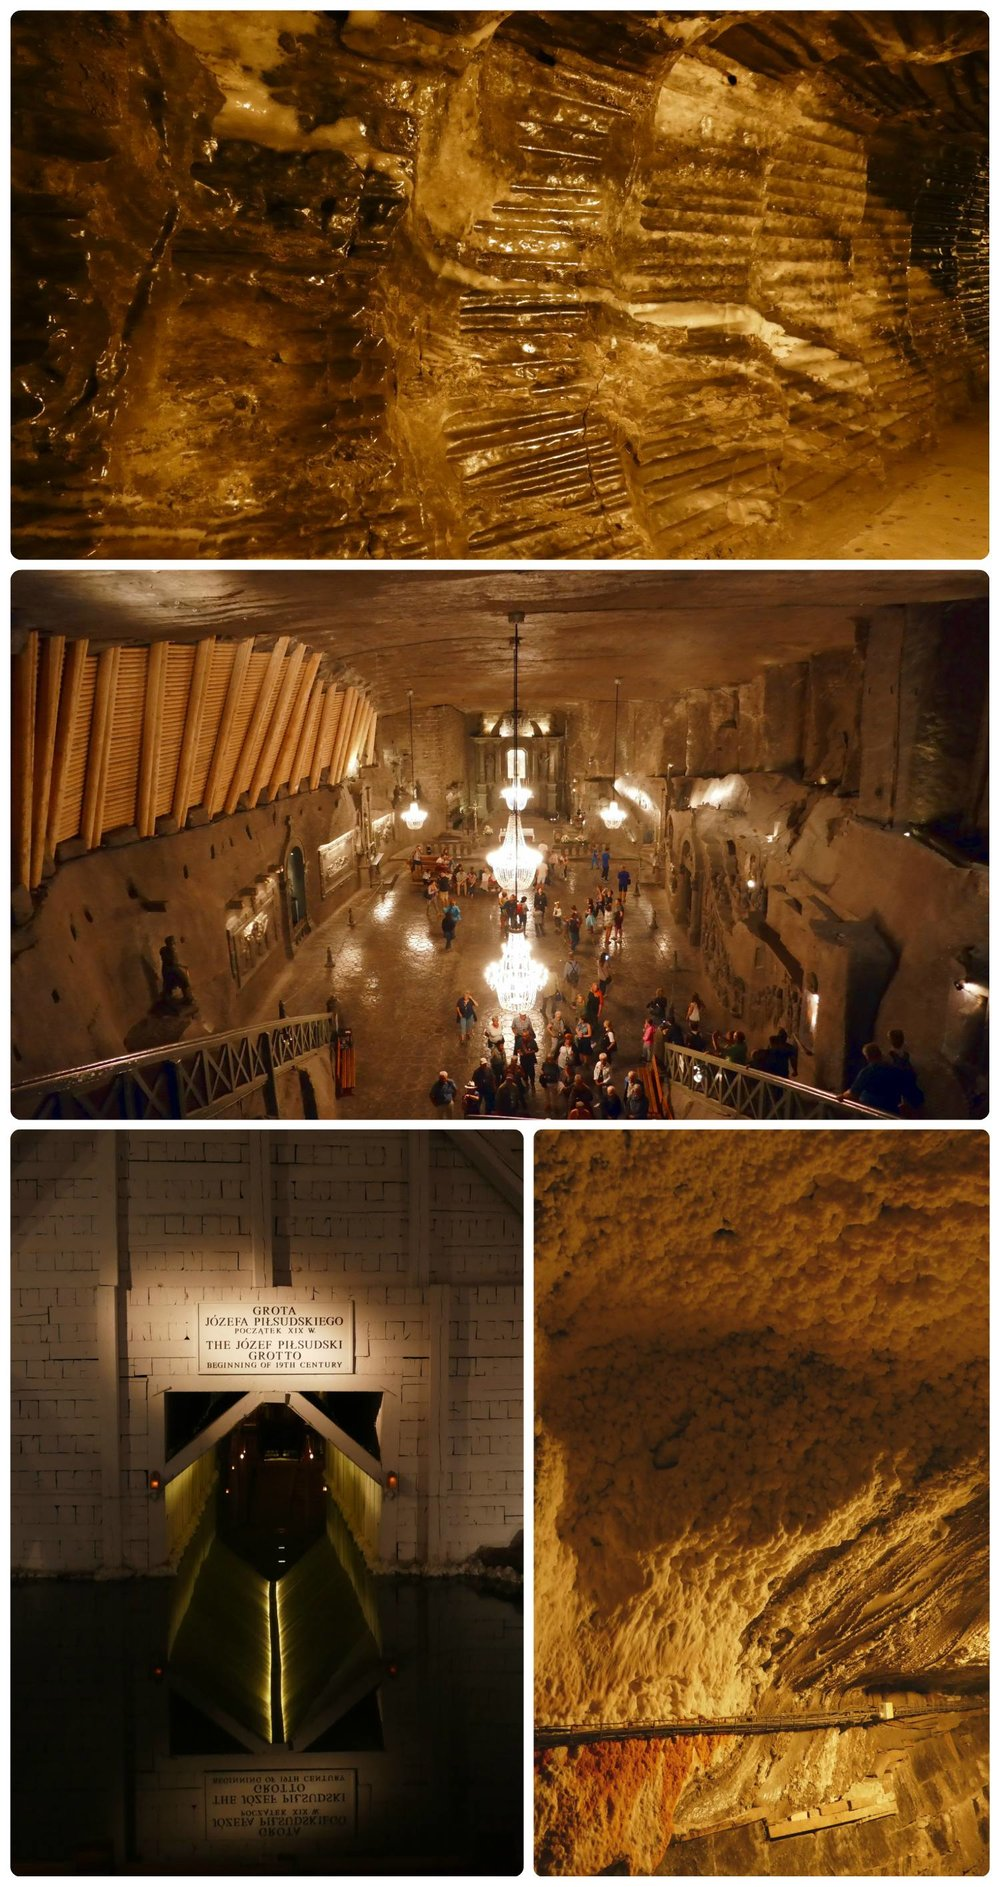 The walls in the mine are covered in salt and form in popcorn-like structures, or in a smooth shiny finish. From the salt sculptures, large salt cathedrals, to the salt water lakes, the mine has been turned into a tourist spot!